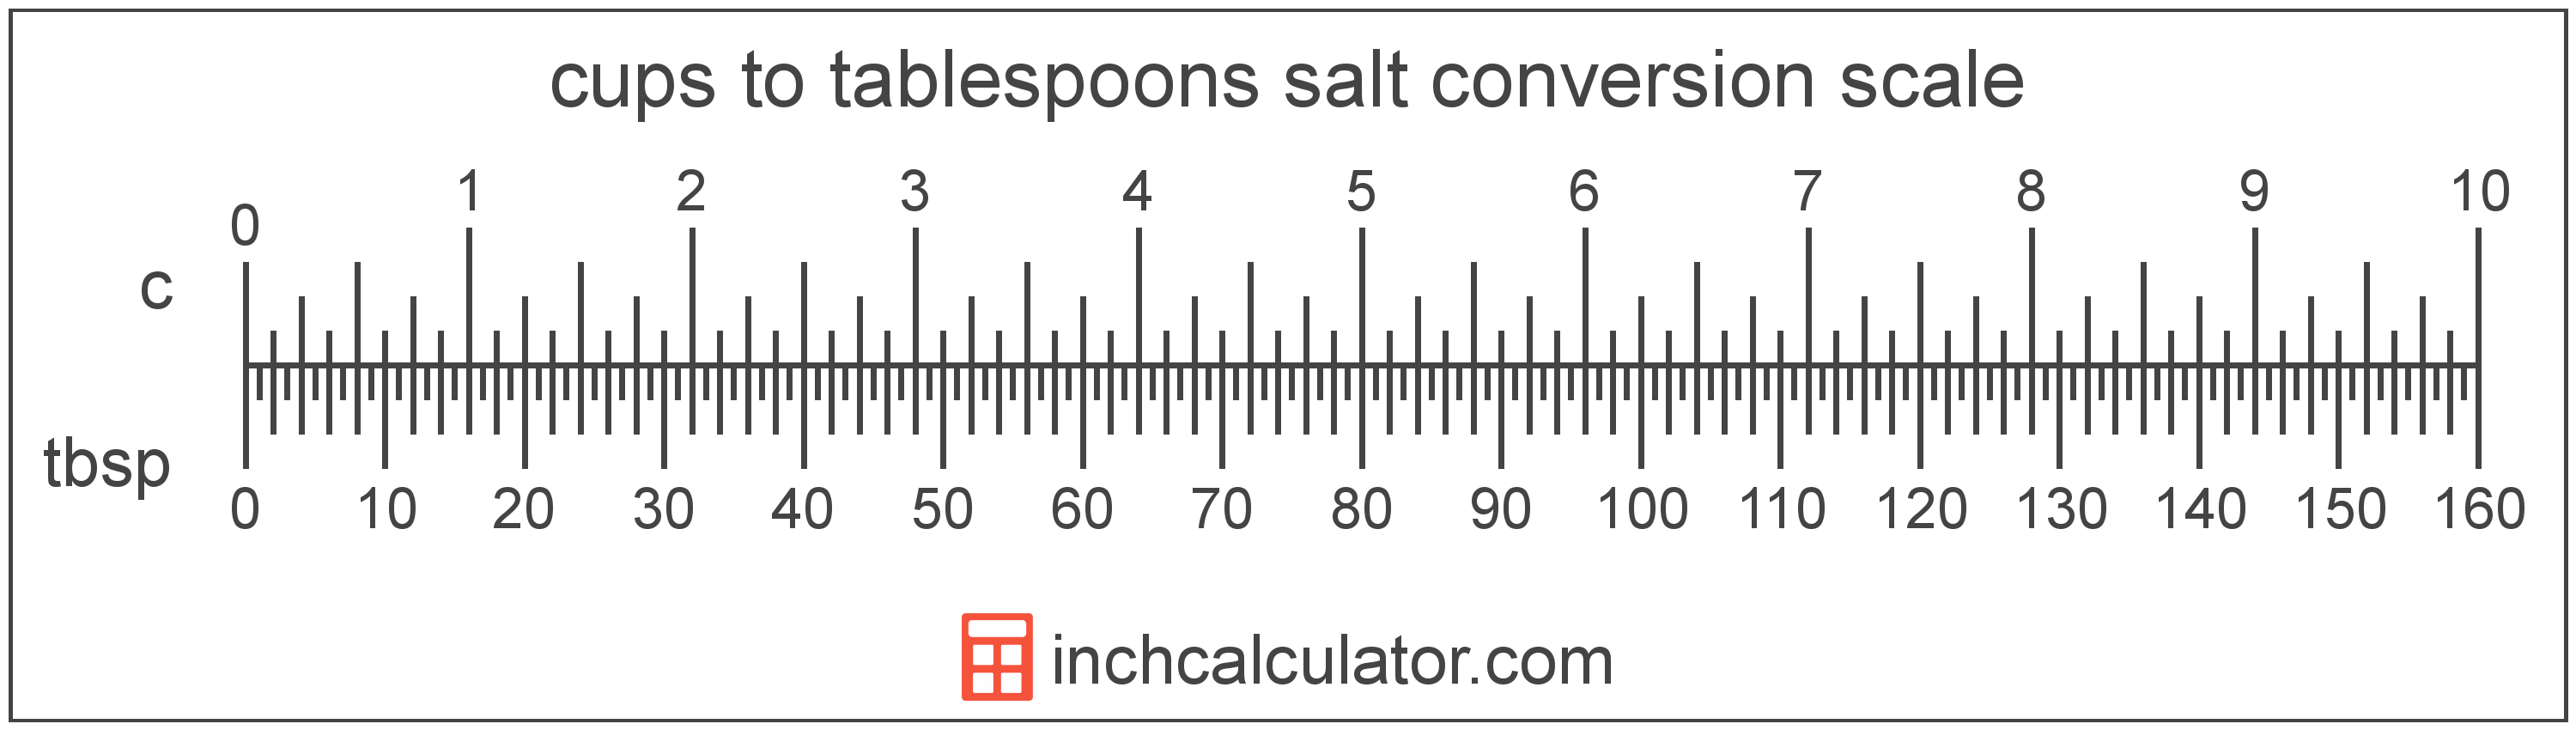 Cups Of Salt To Tablespoons Conversion C To Tbsp